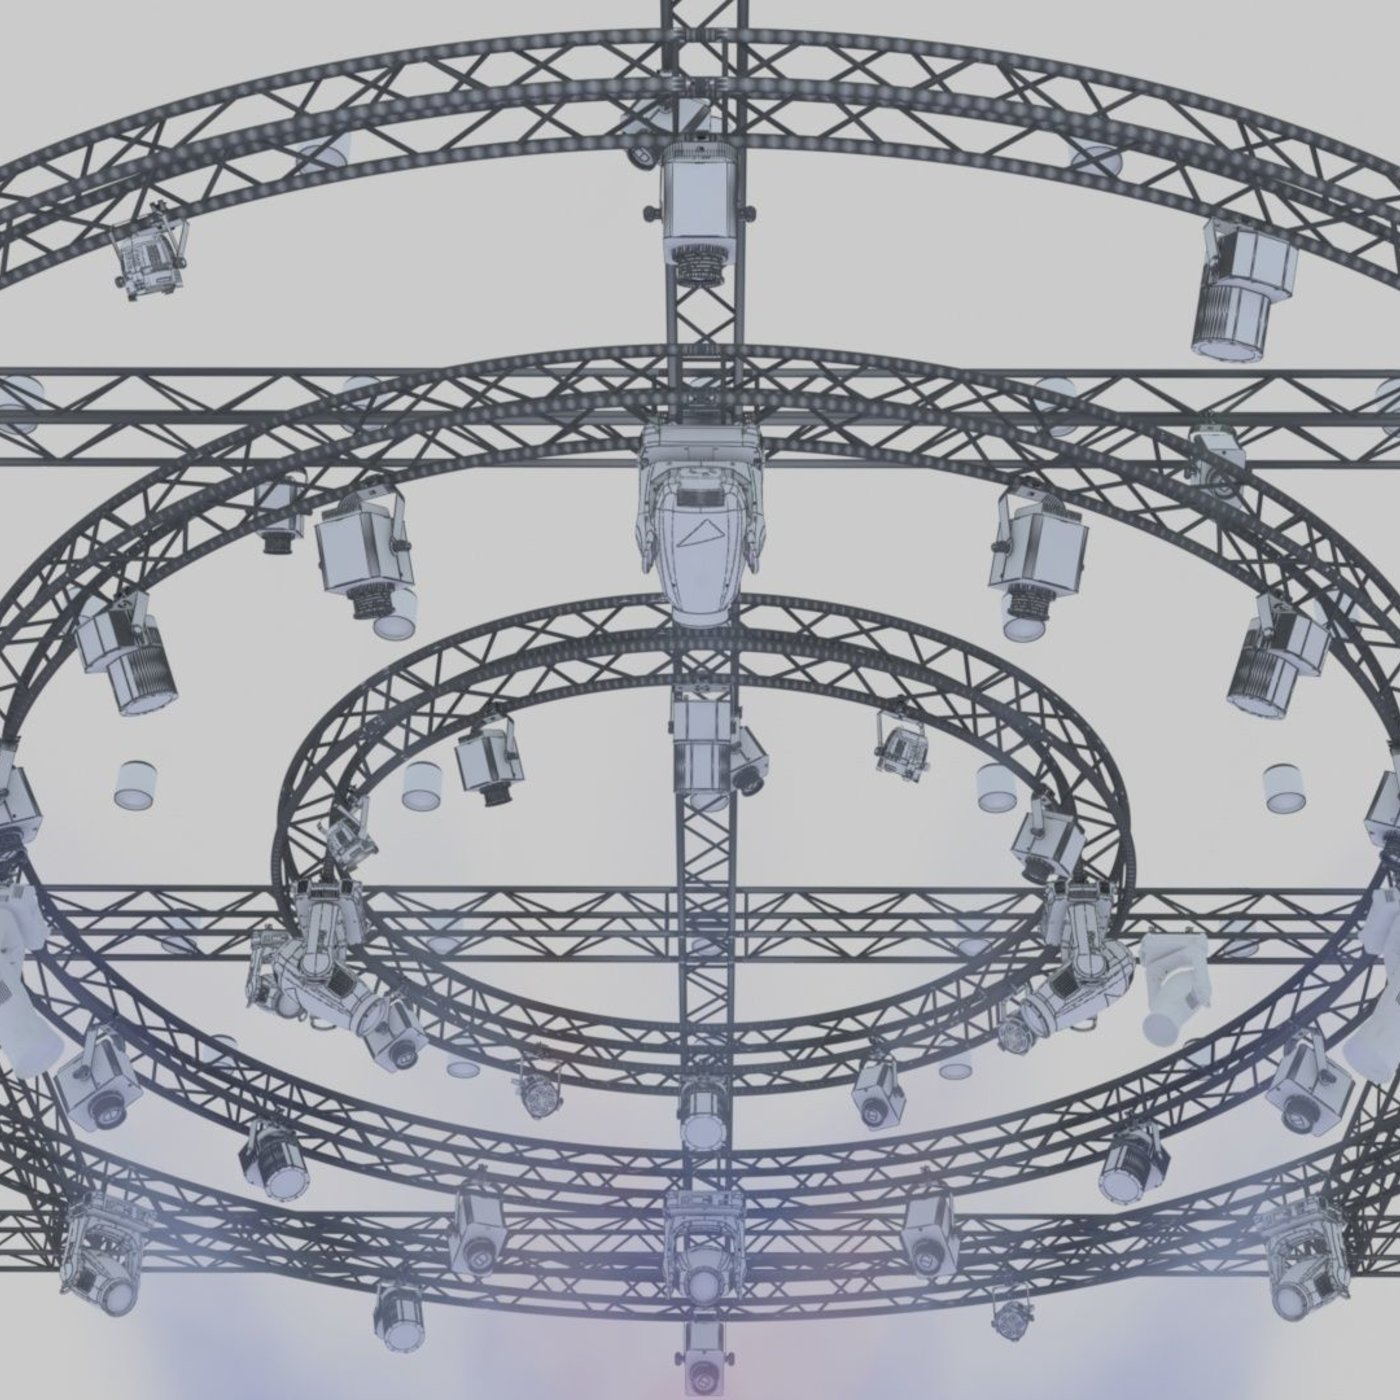 TV Studio Stage Truss and Lights